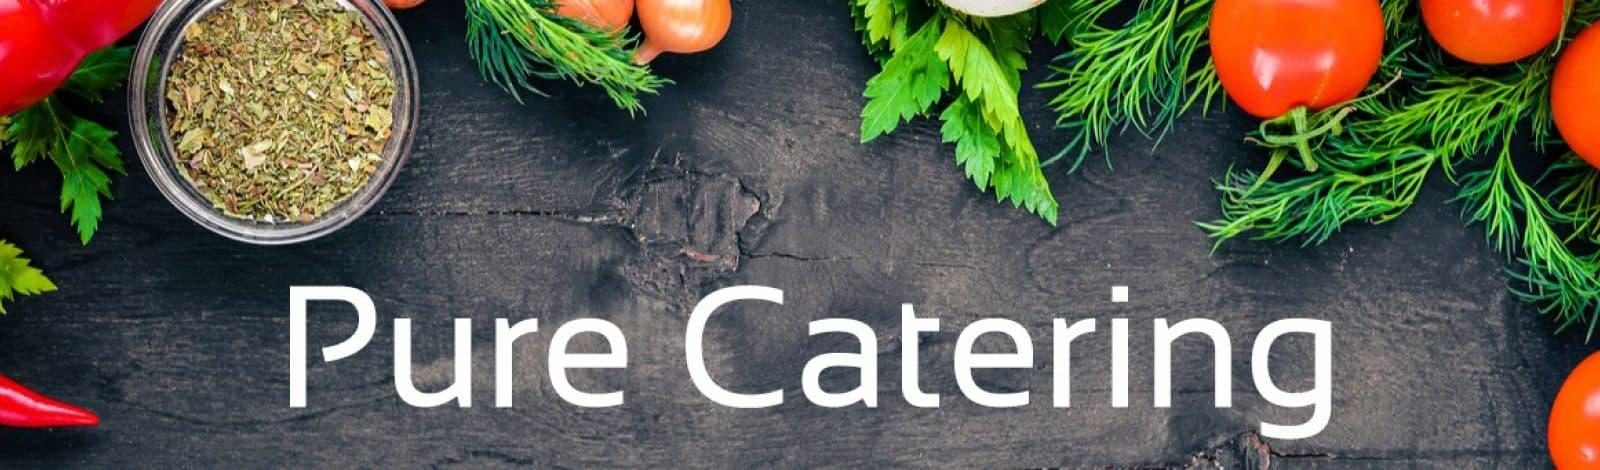 Pure Catering Header